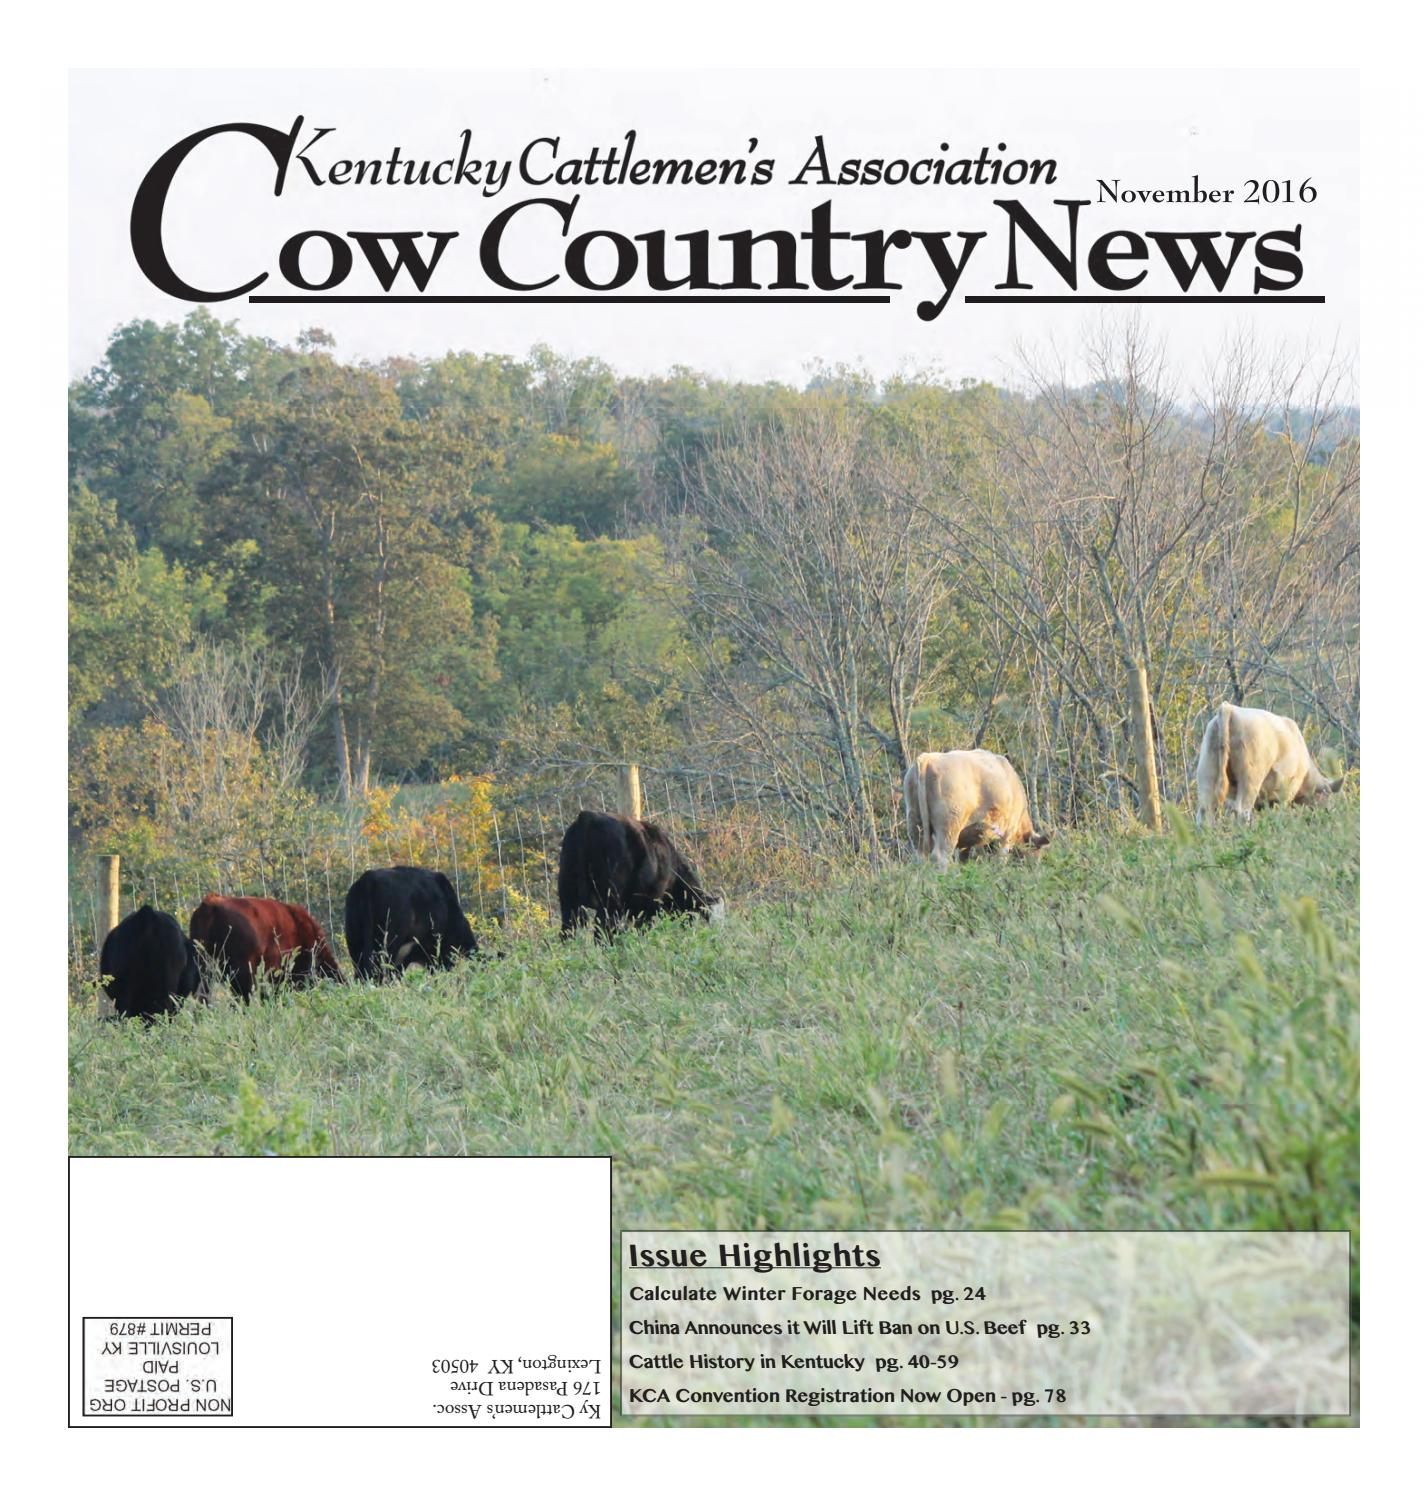 Cow Country News - November 2016 by The Kentucky Cattlemen's